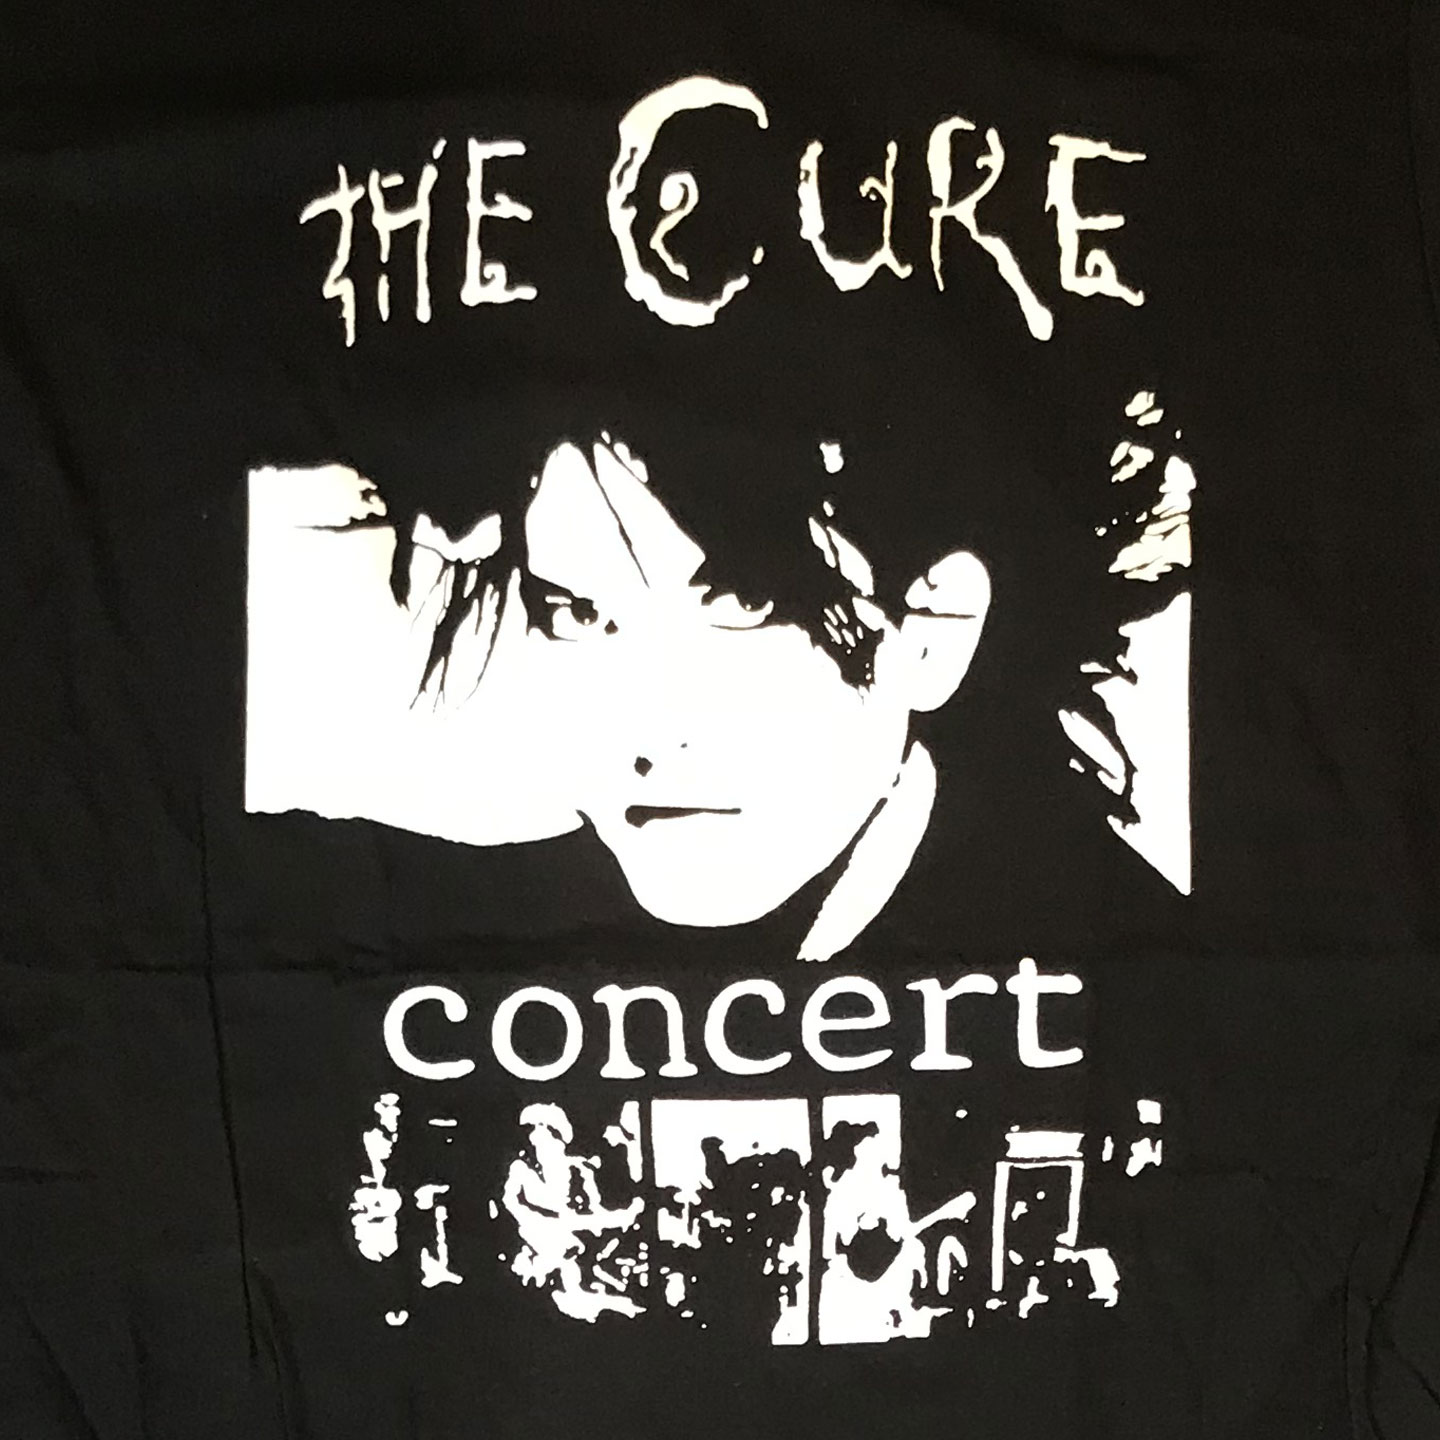 THE CURE Tシャツ concert